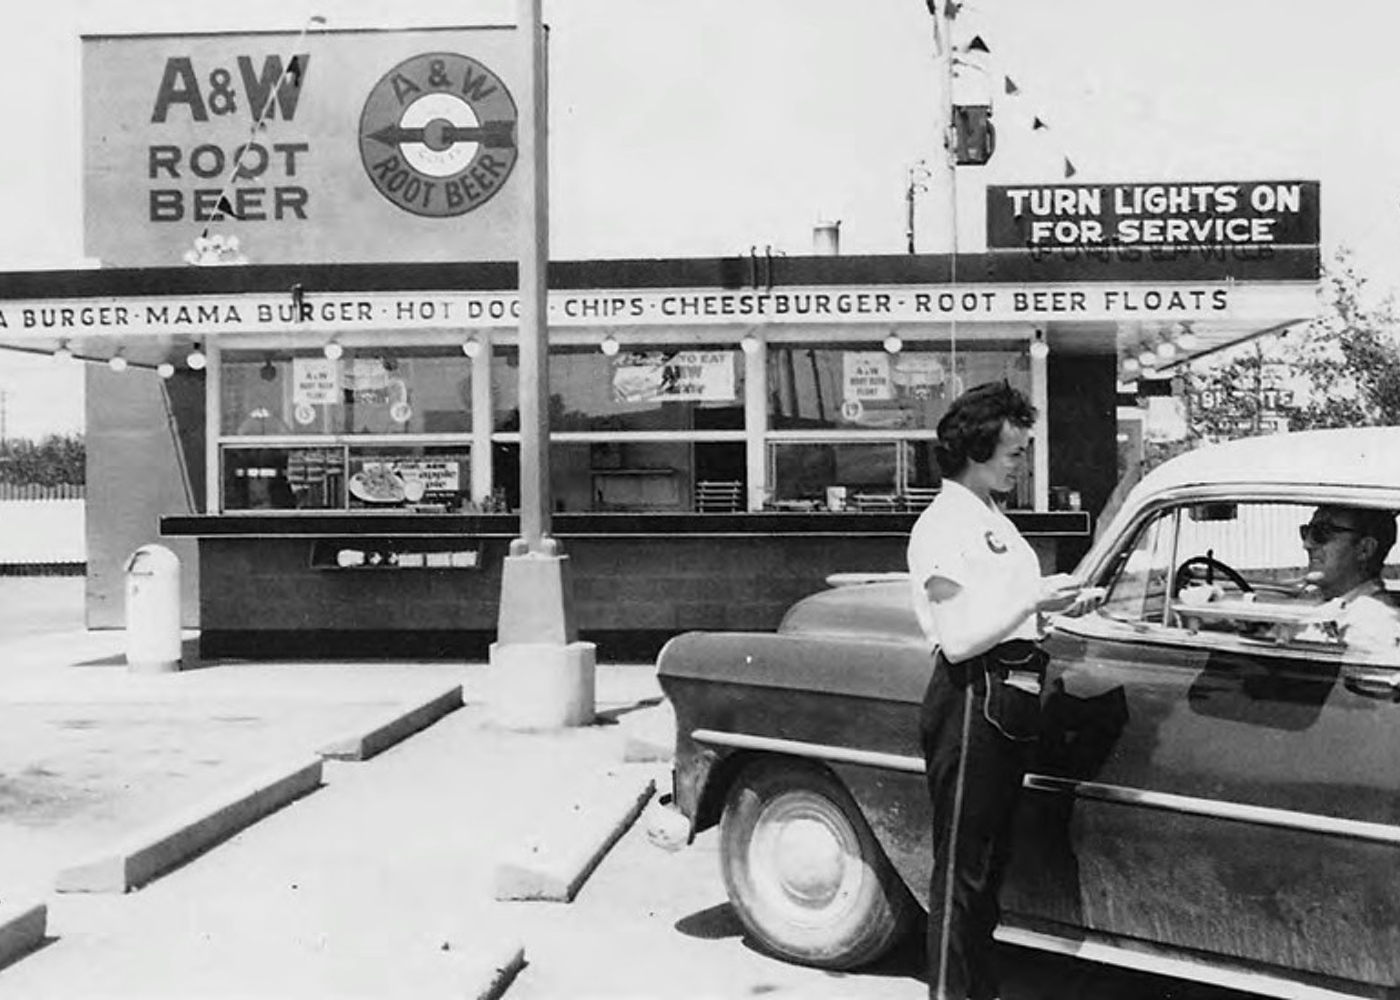 Black and White Photo of Vintage A&W Restaurant